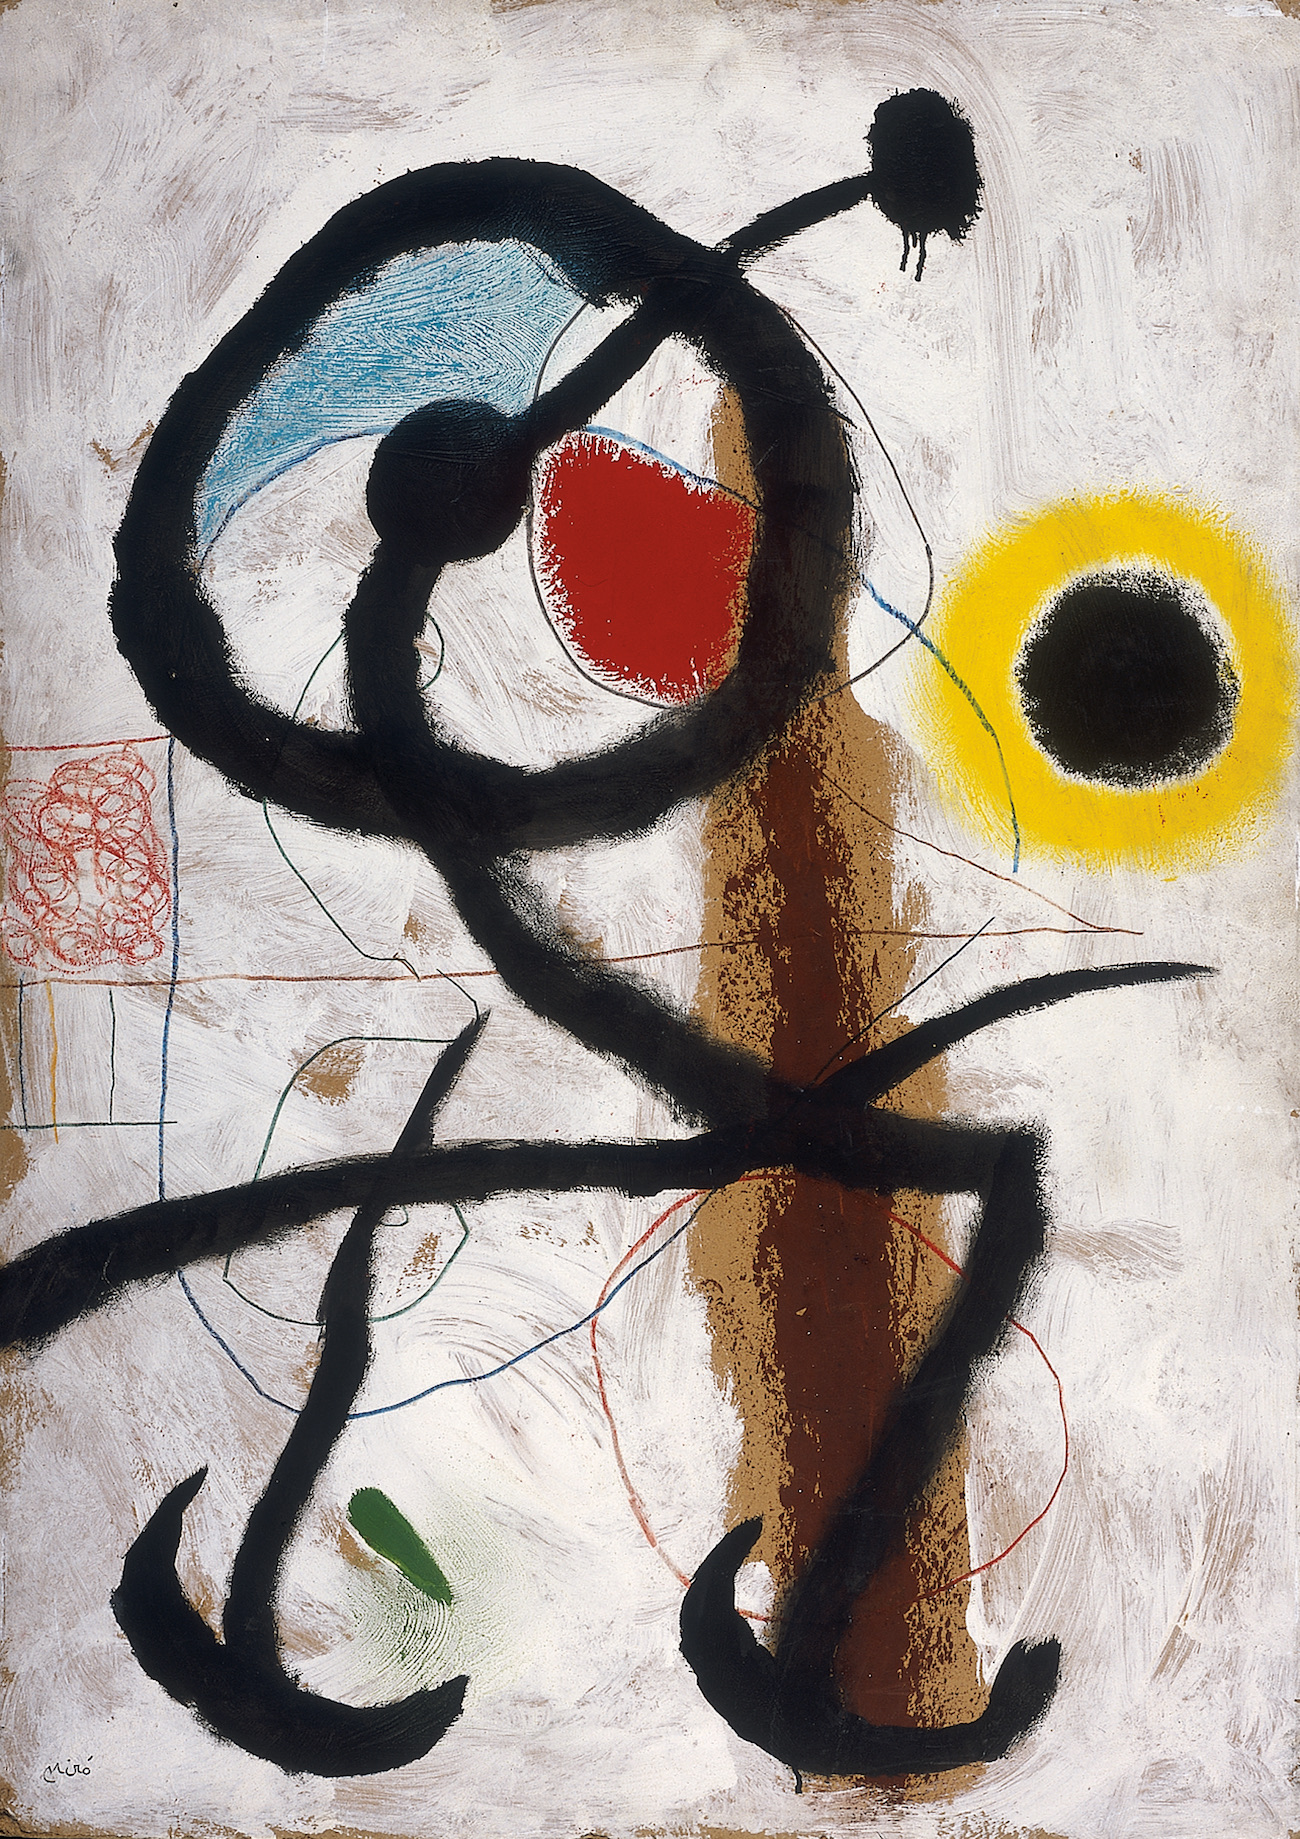 Joan Miró, Pájaro (1960) Oleo sobre cartulina. The Israel Museum, Jerusalem On permanent loan from the Dr. Georg and Josi Guggenheim Foundation, through the Swiss Friends of the Israel Museum